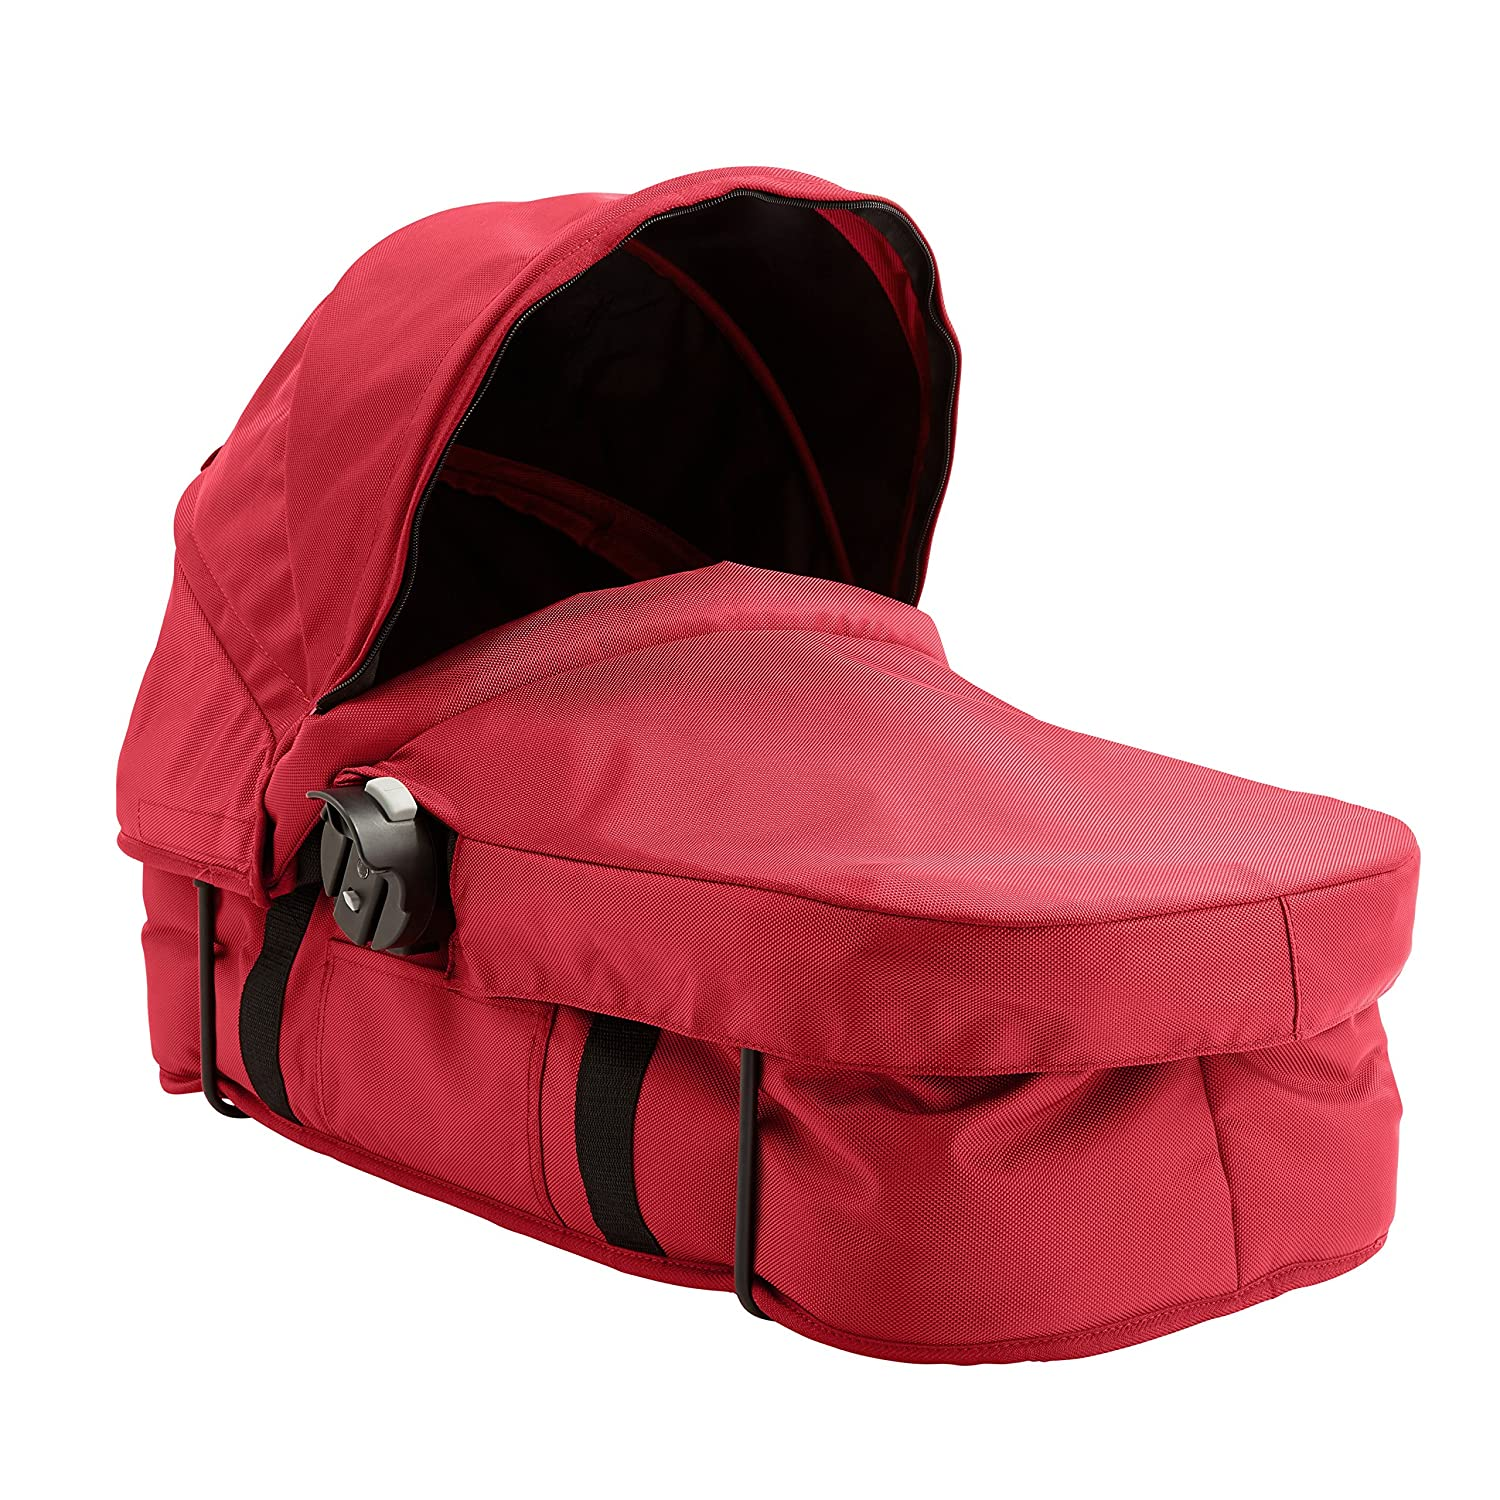 Baby Jogger Select Carrycot Kit (Red) BJ04436